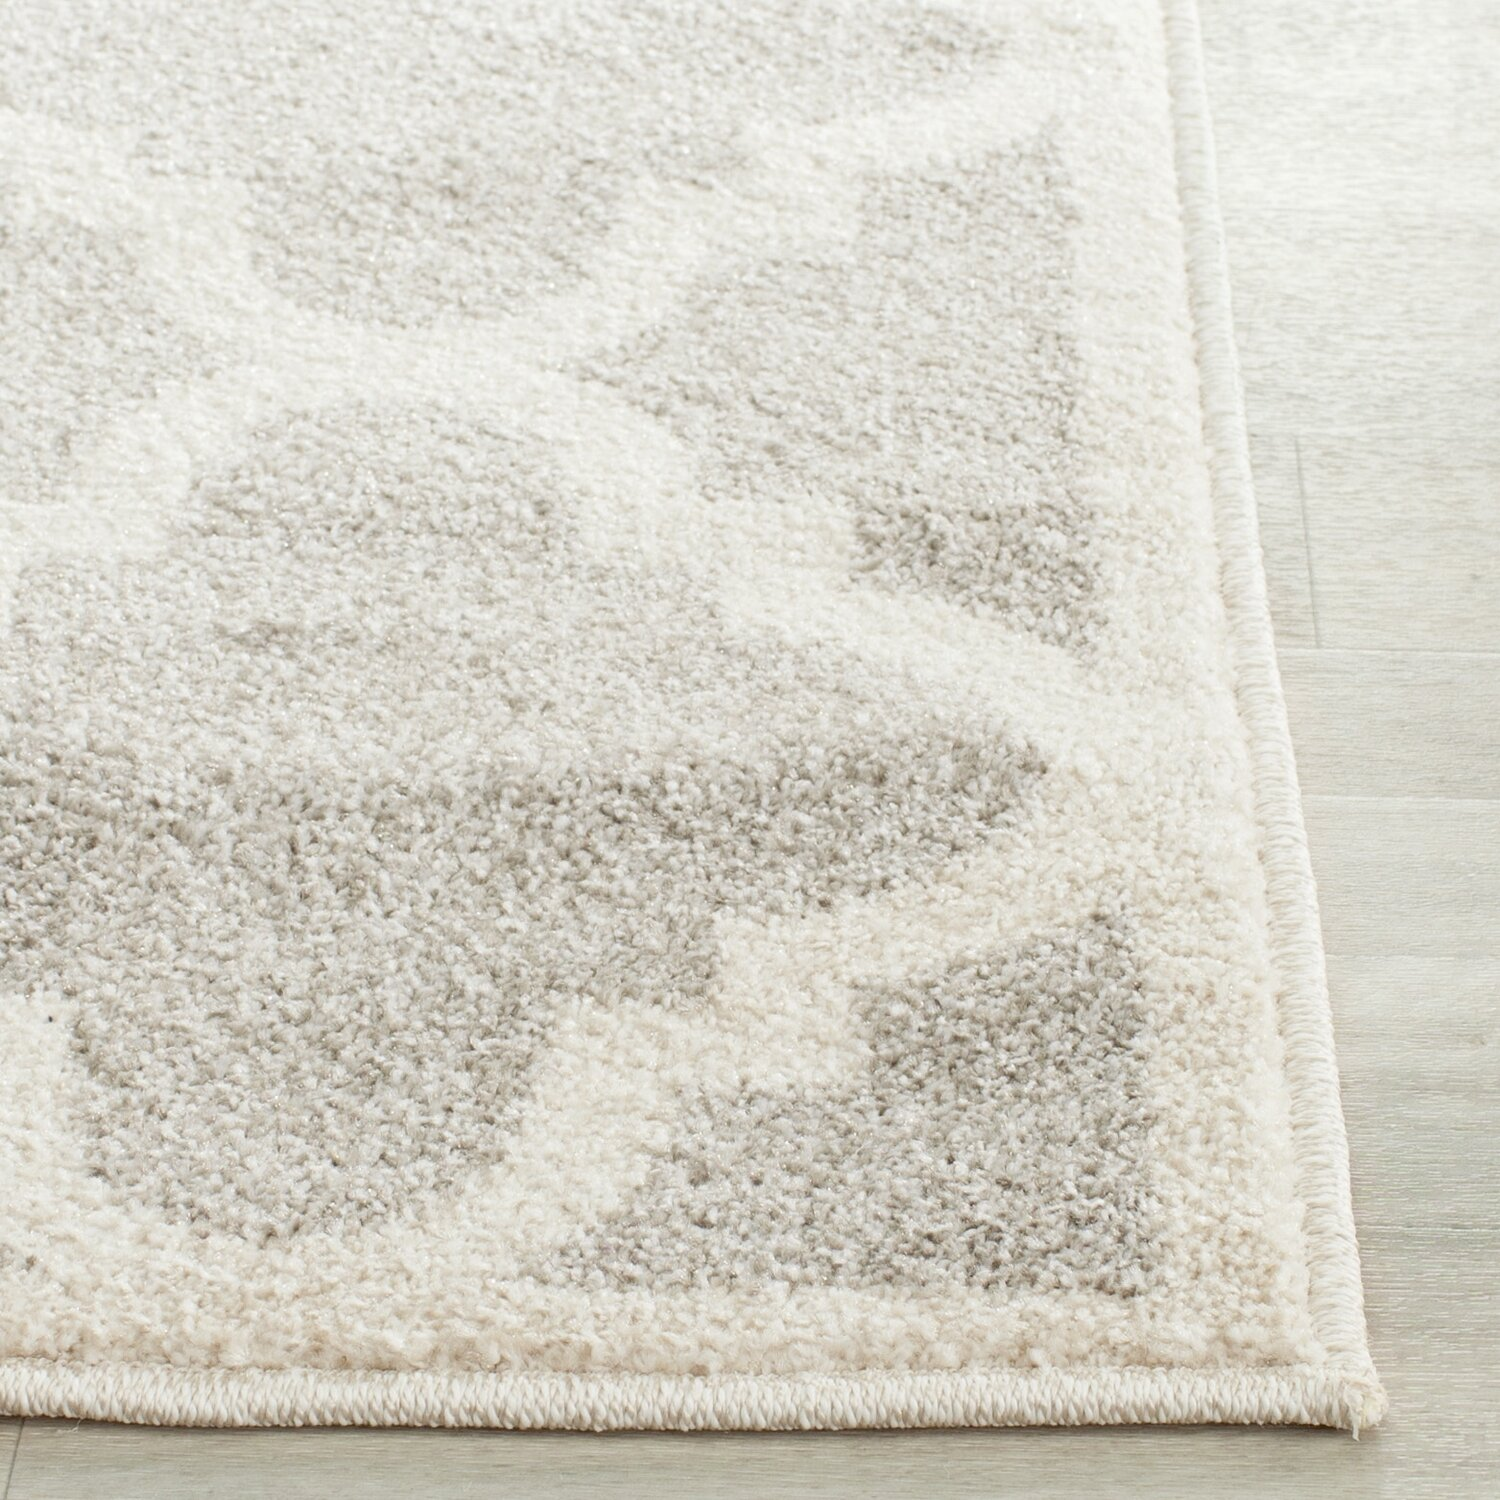 House of hampton levon light grey beige area rug for Grey and tan rug